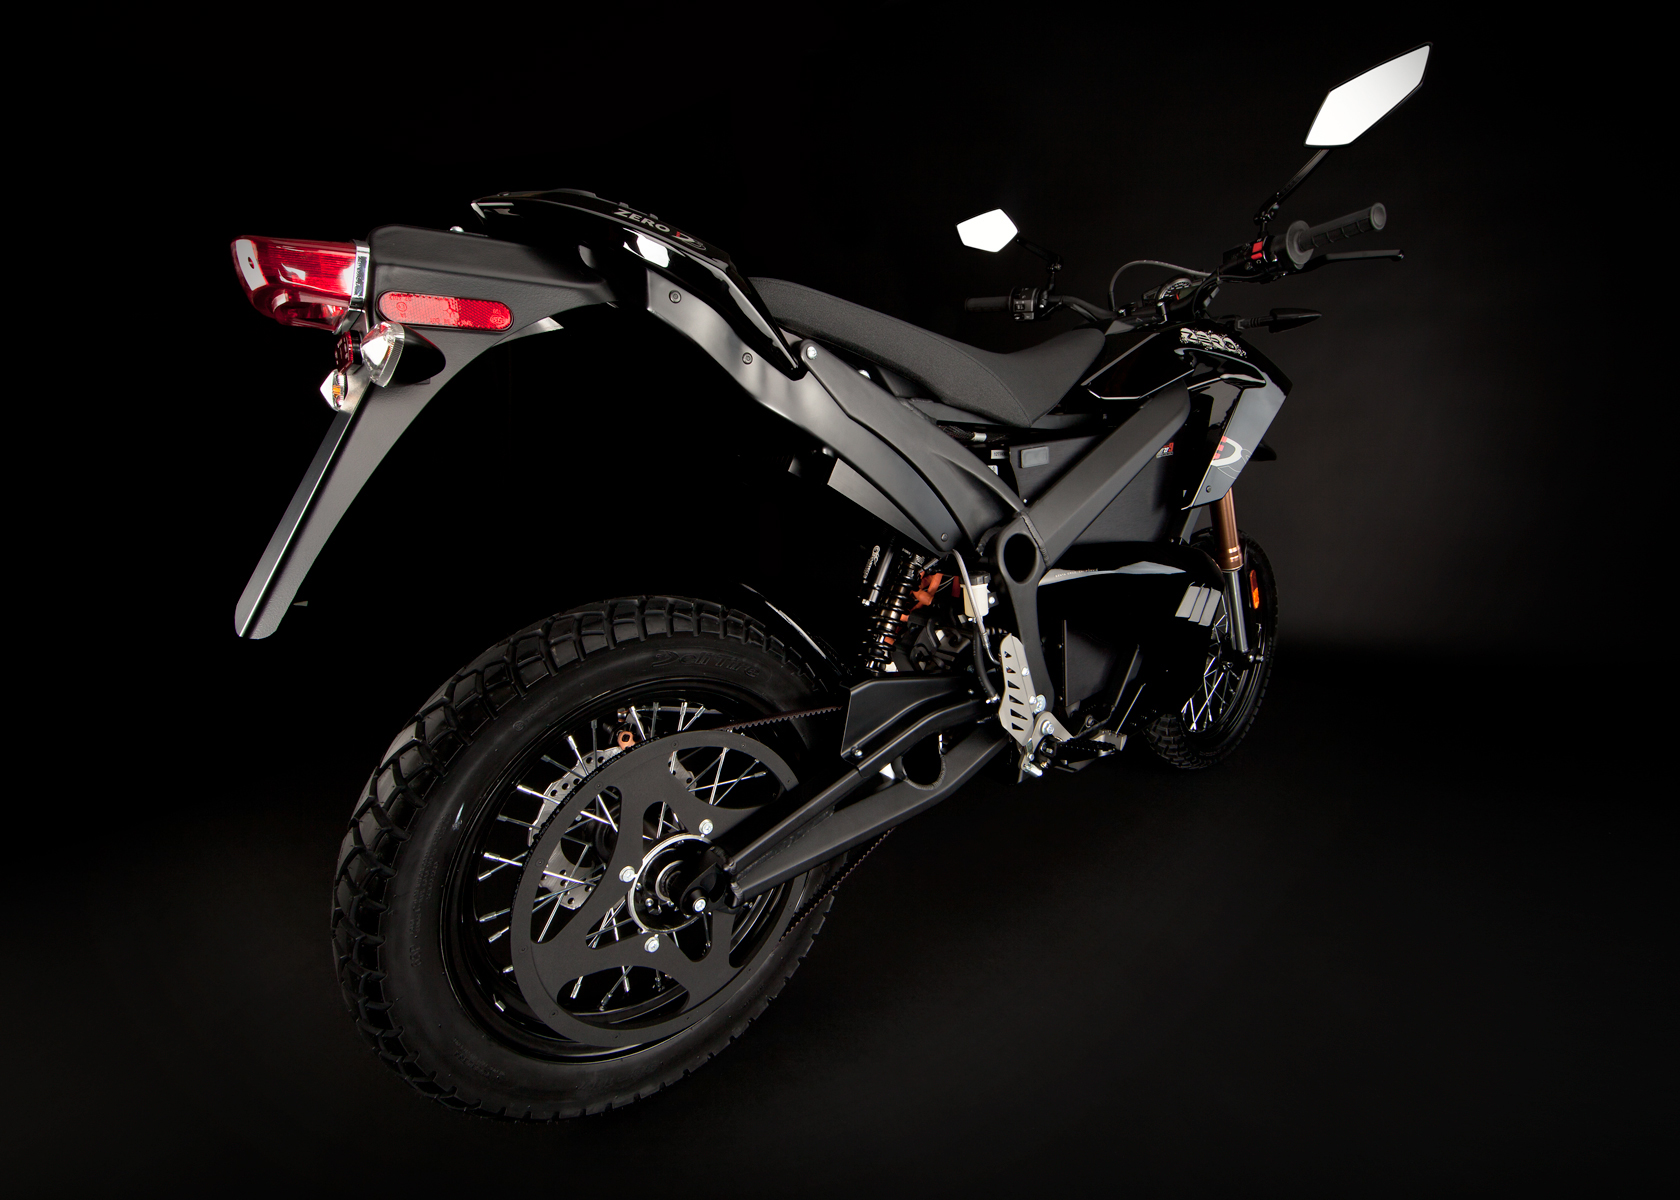 2012 Zero DS Electric Motorcycle: Black Angle Right, Rear View, Wide